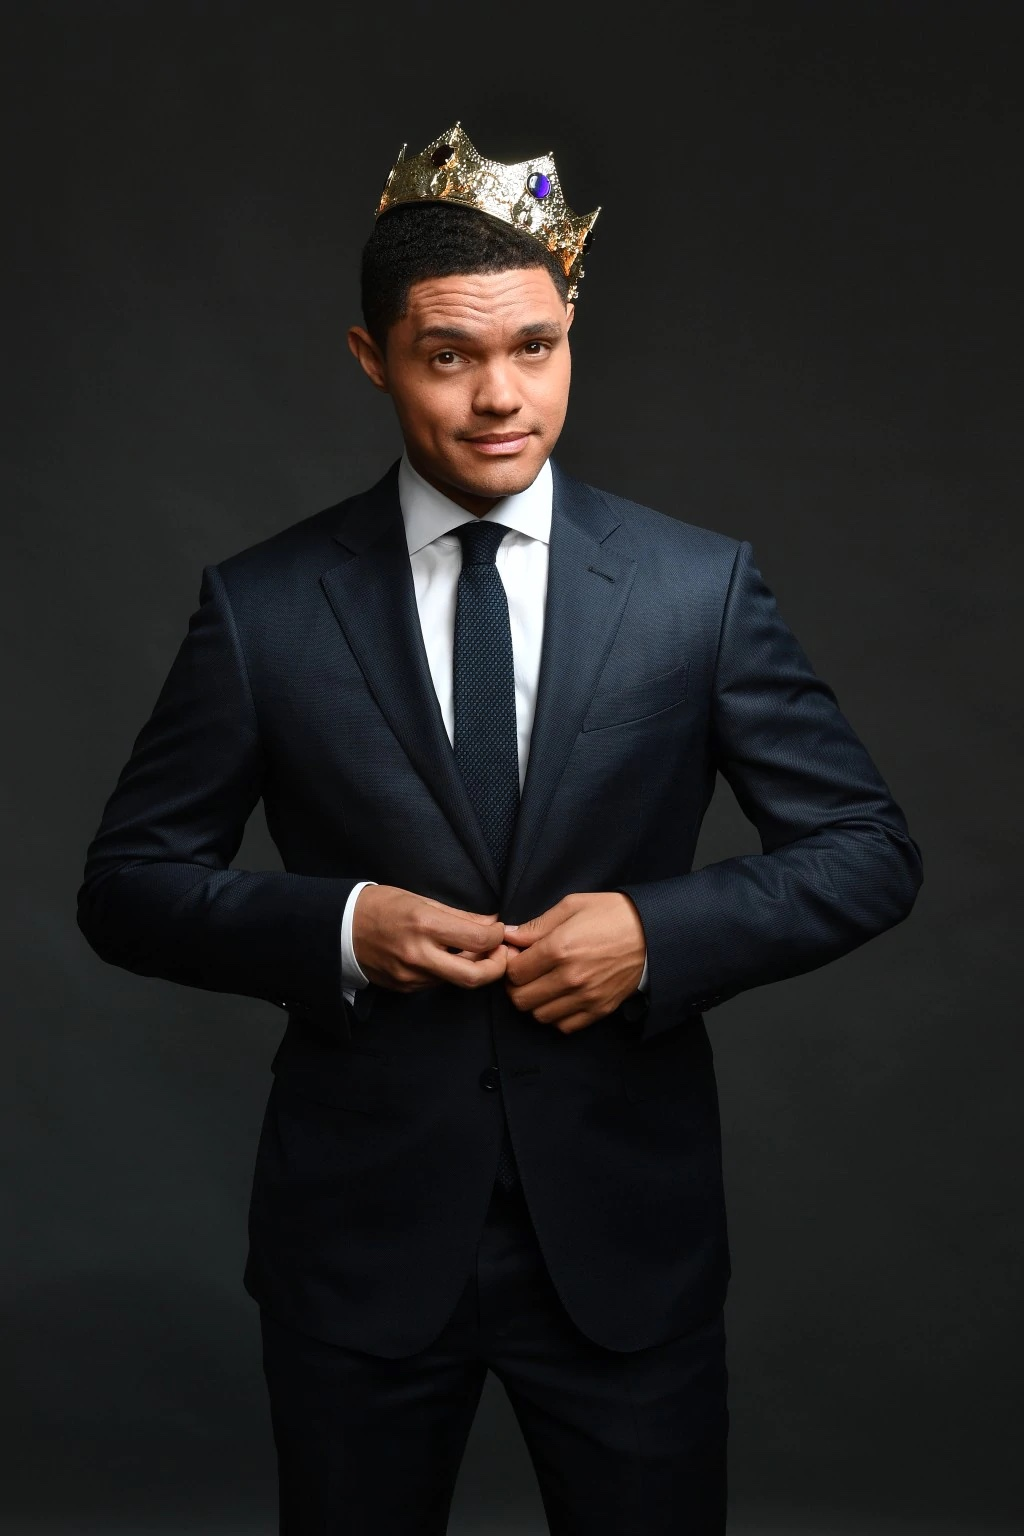 Comedian Trevor Noah has been spotted with a new girlfriend. Could she be the one? Read on as we spill the tea about this hot couple.